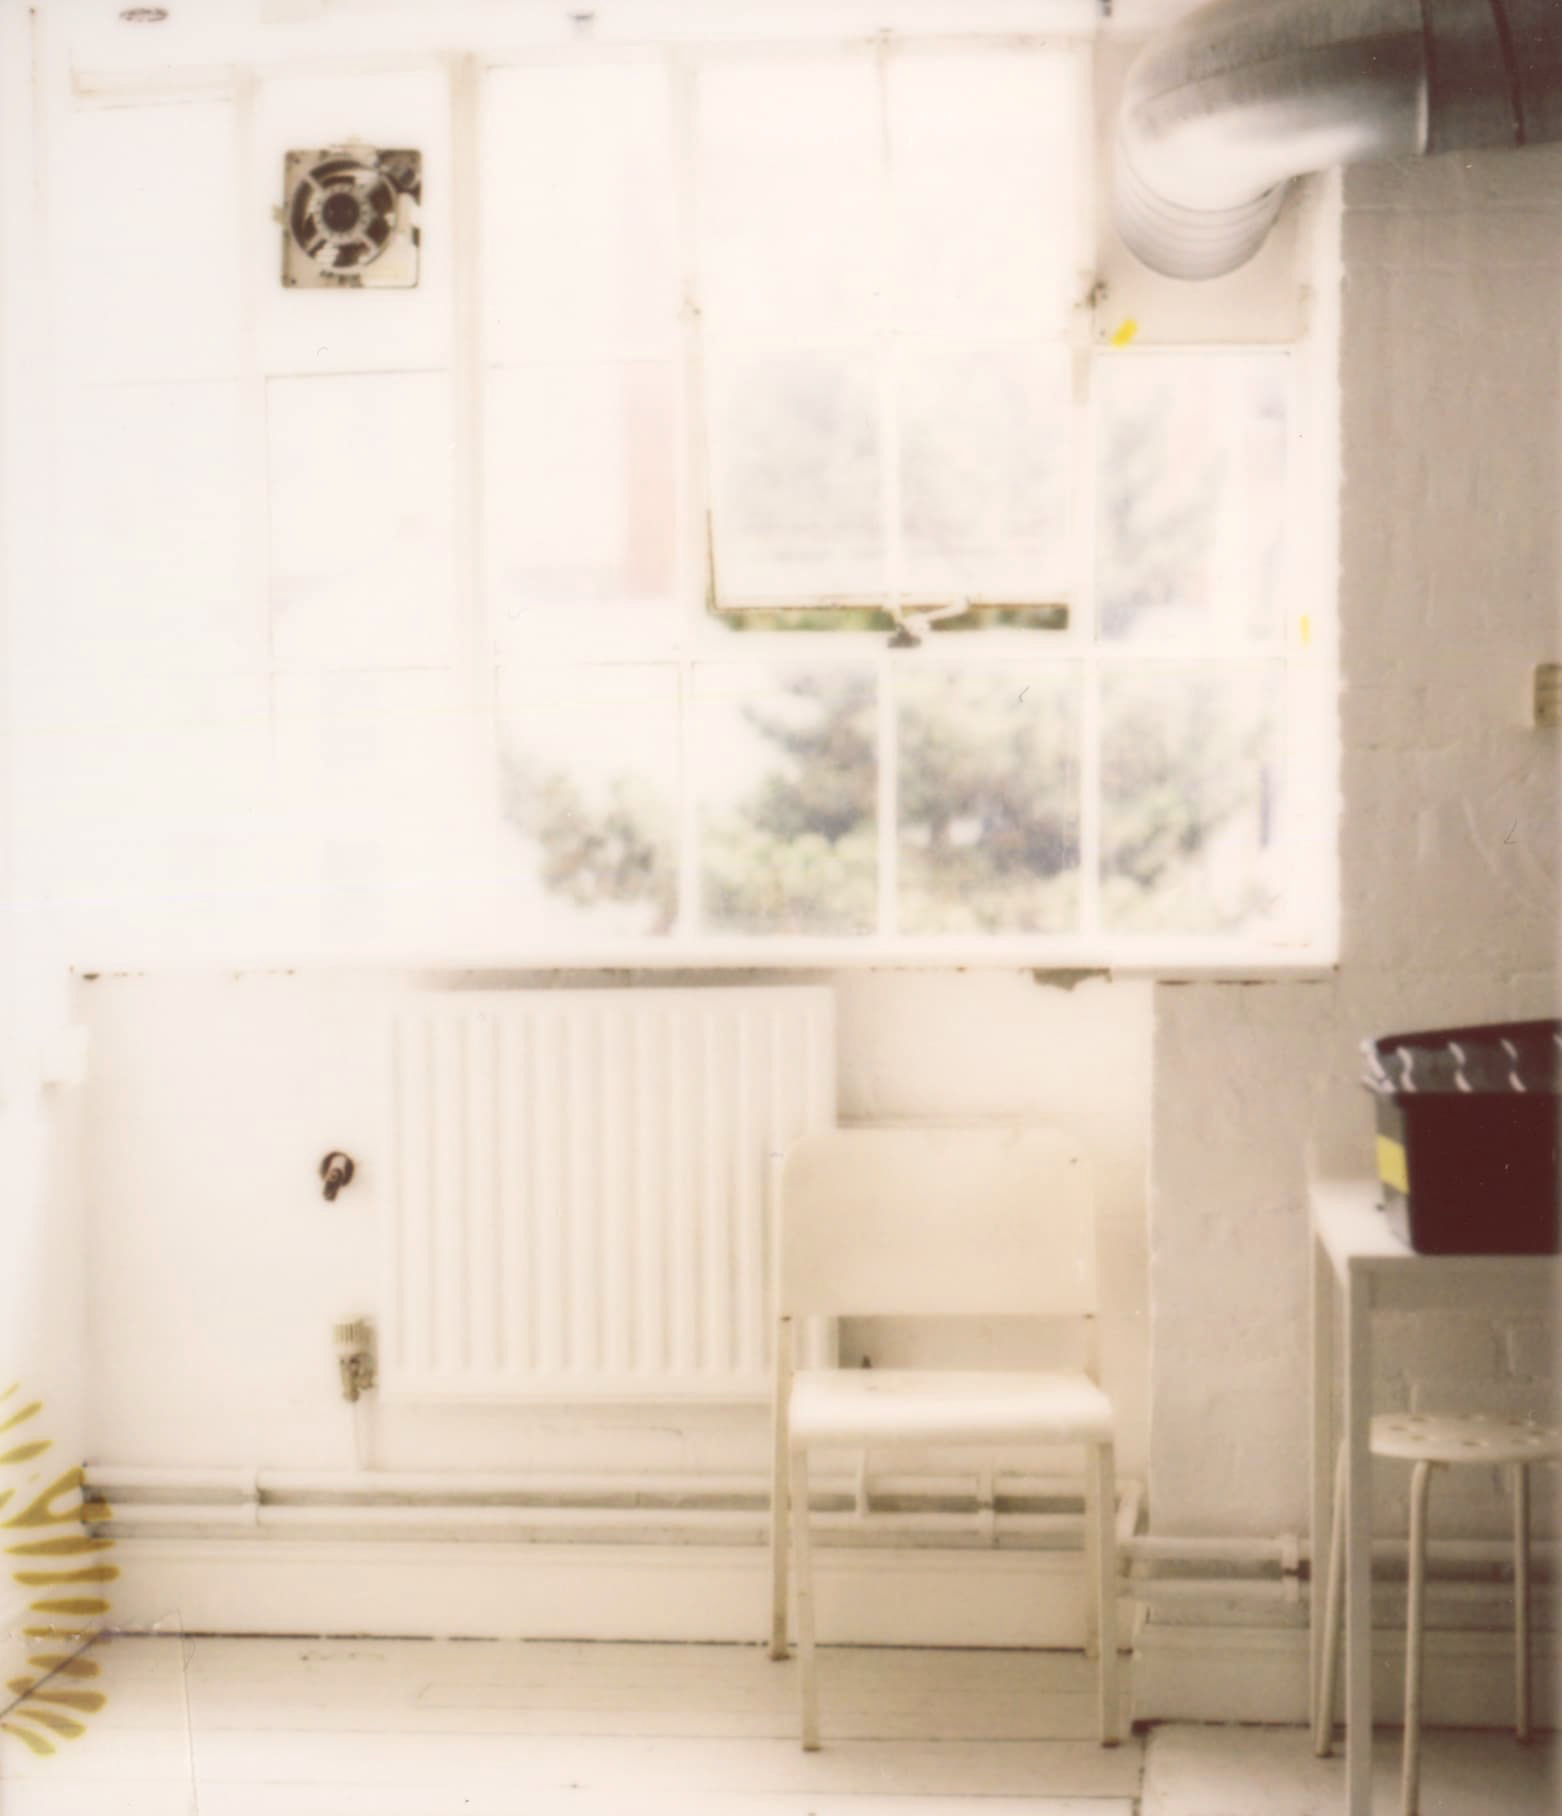 Studio window and furniture, all white. Scanned instant film. By Michael Chalmers, 2021